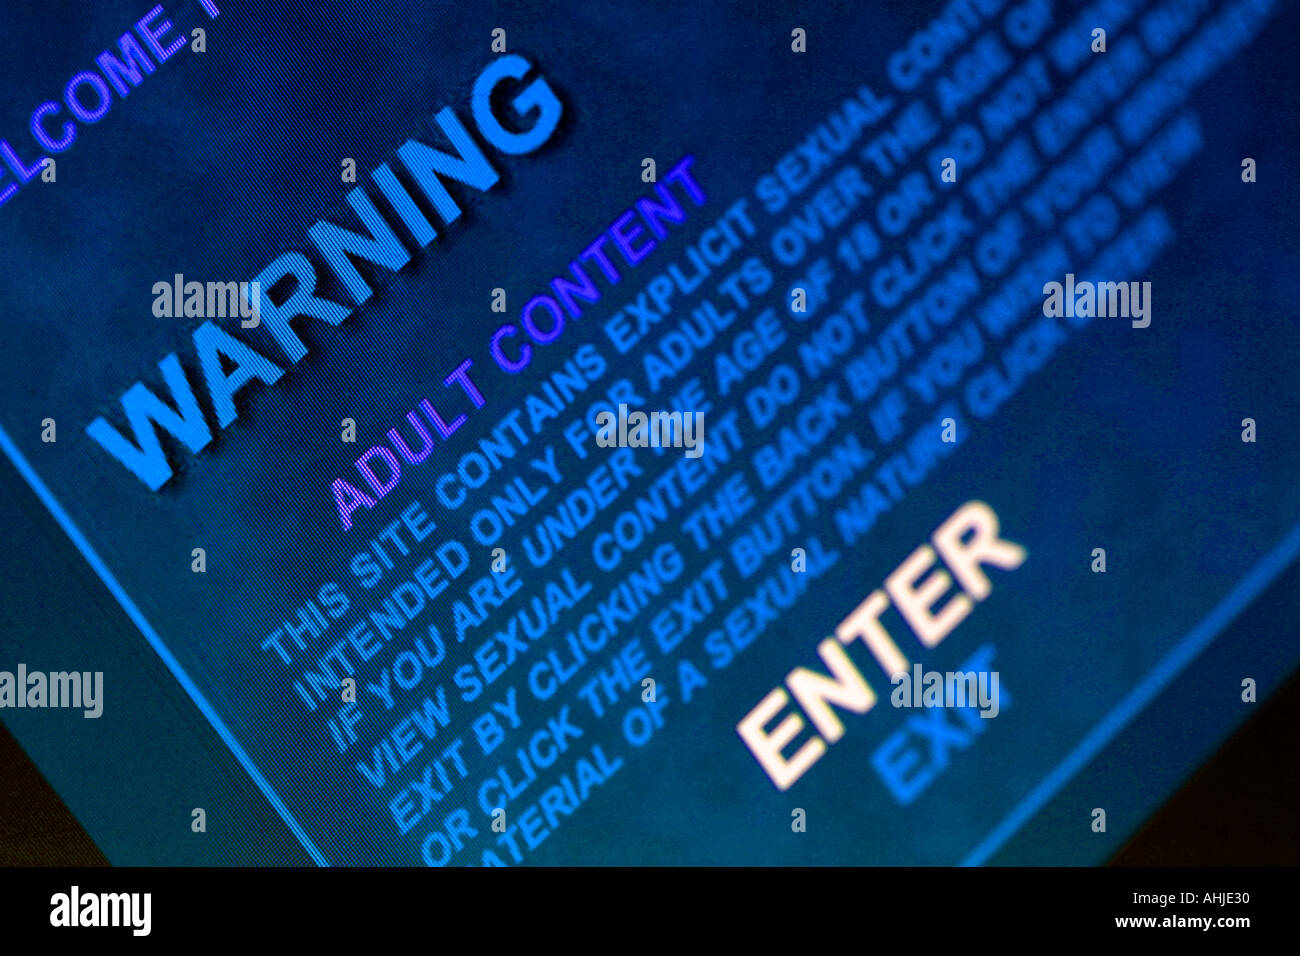 blue-entrance-page-for-joining-an-online